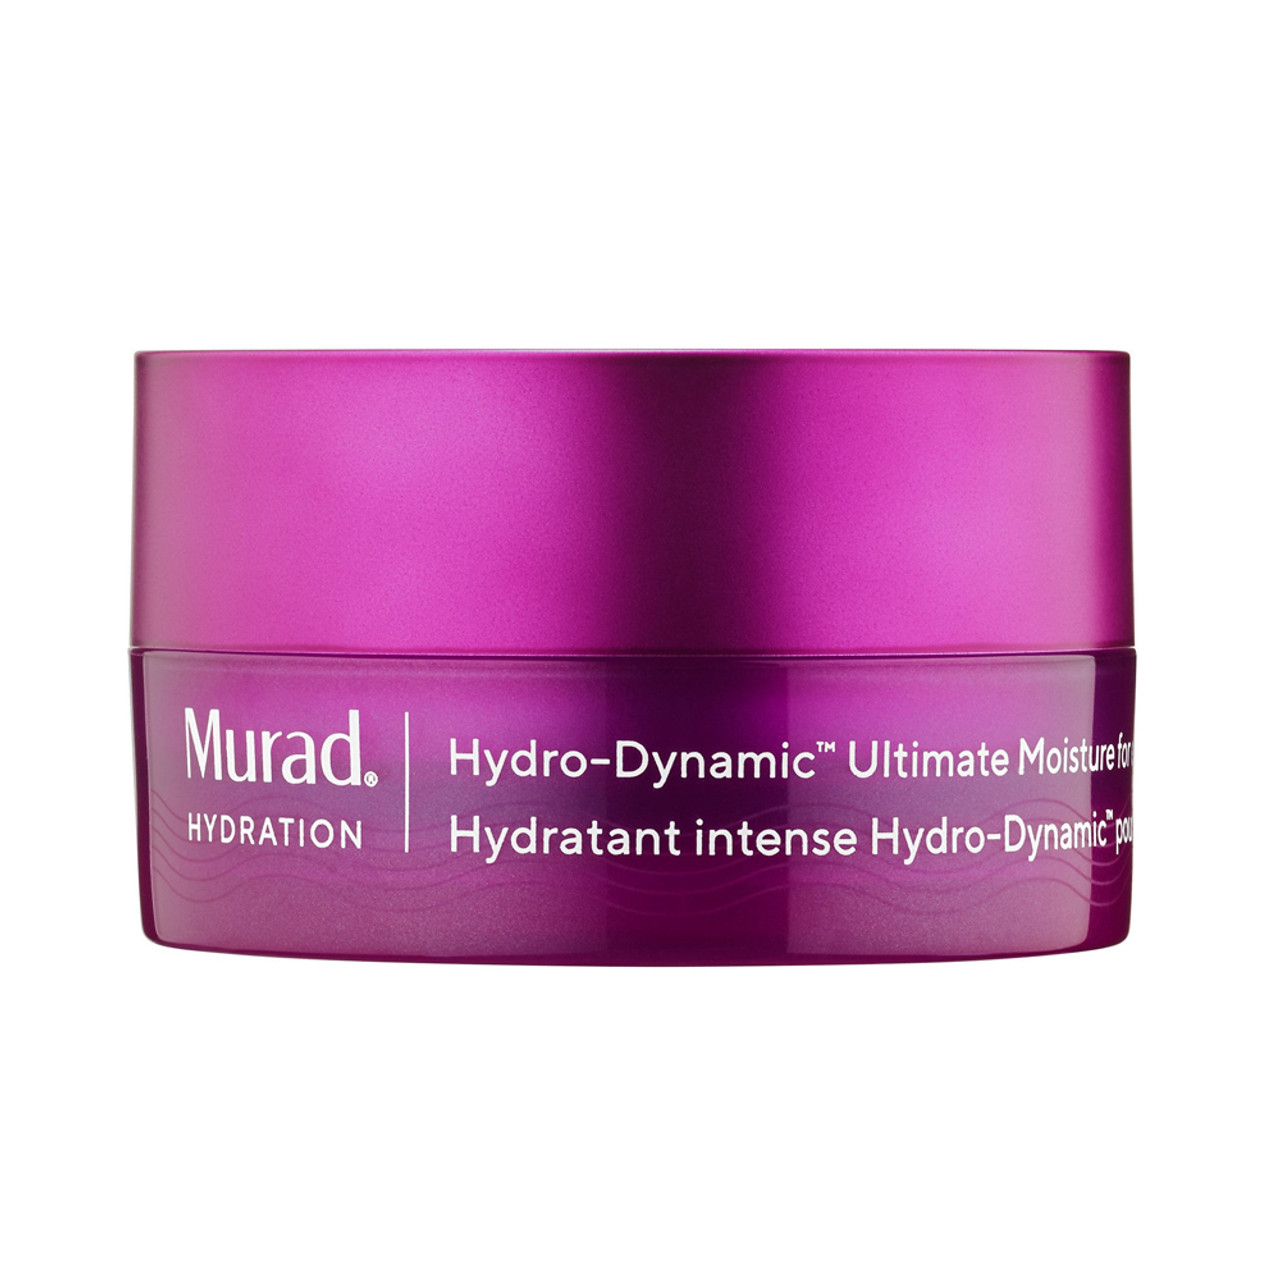 Murad Hydration Hydro-Dynamic Ultimate Moisture For Eyes